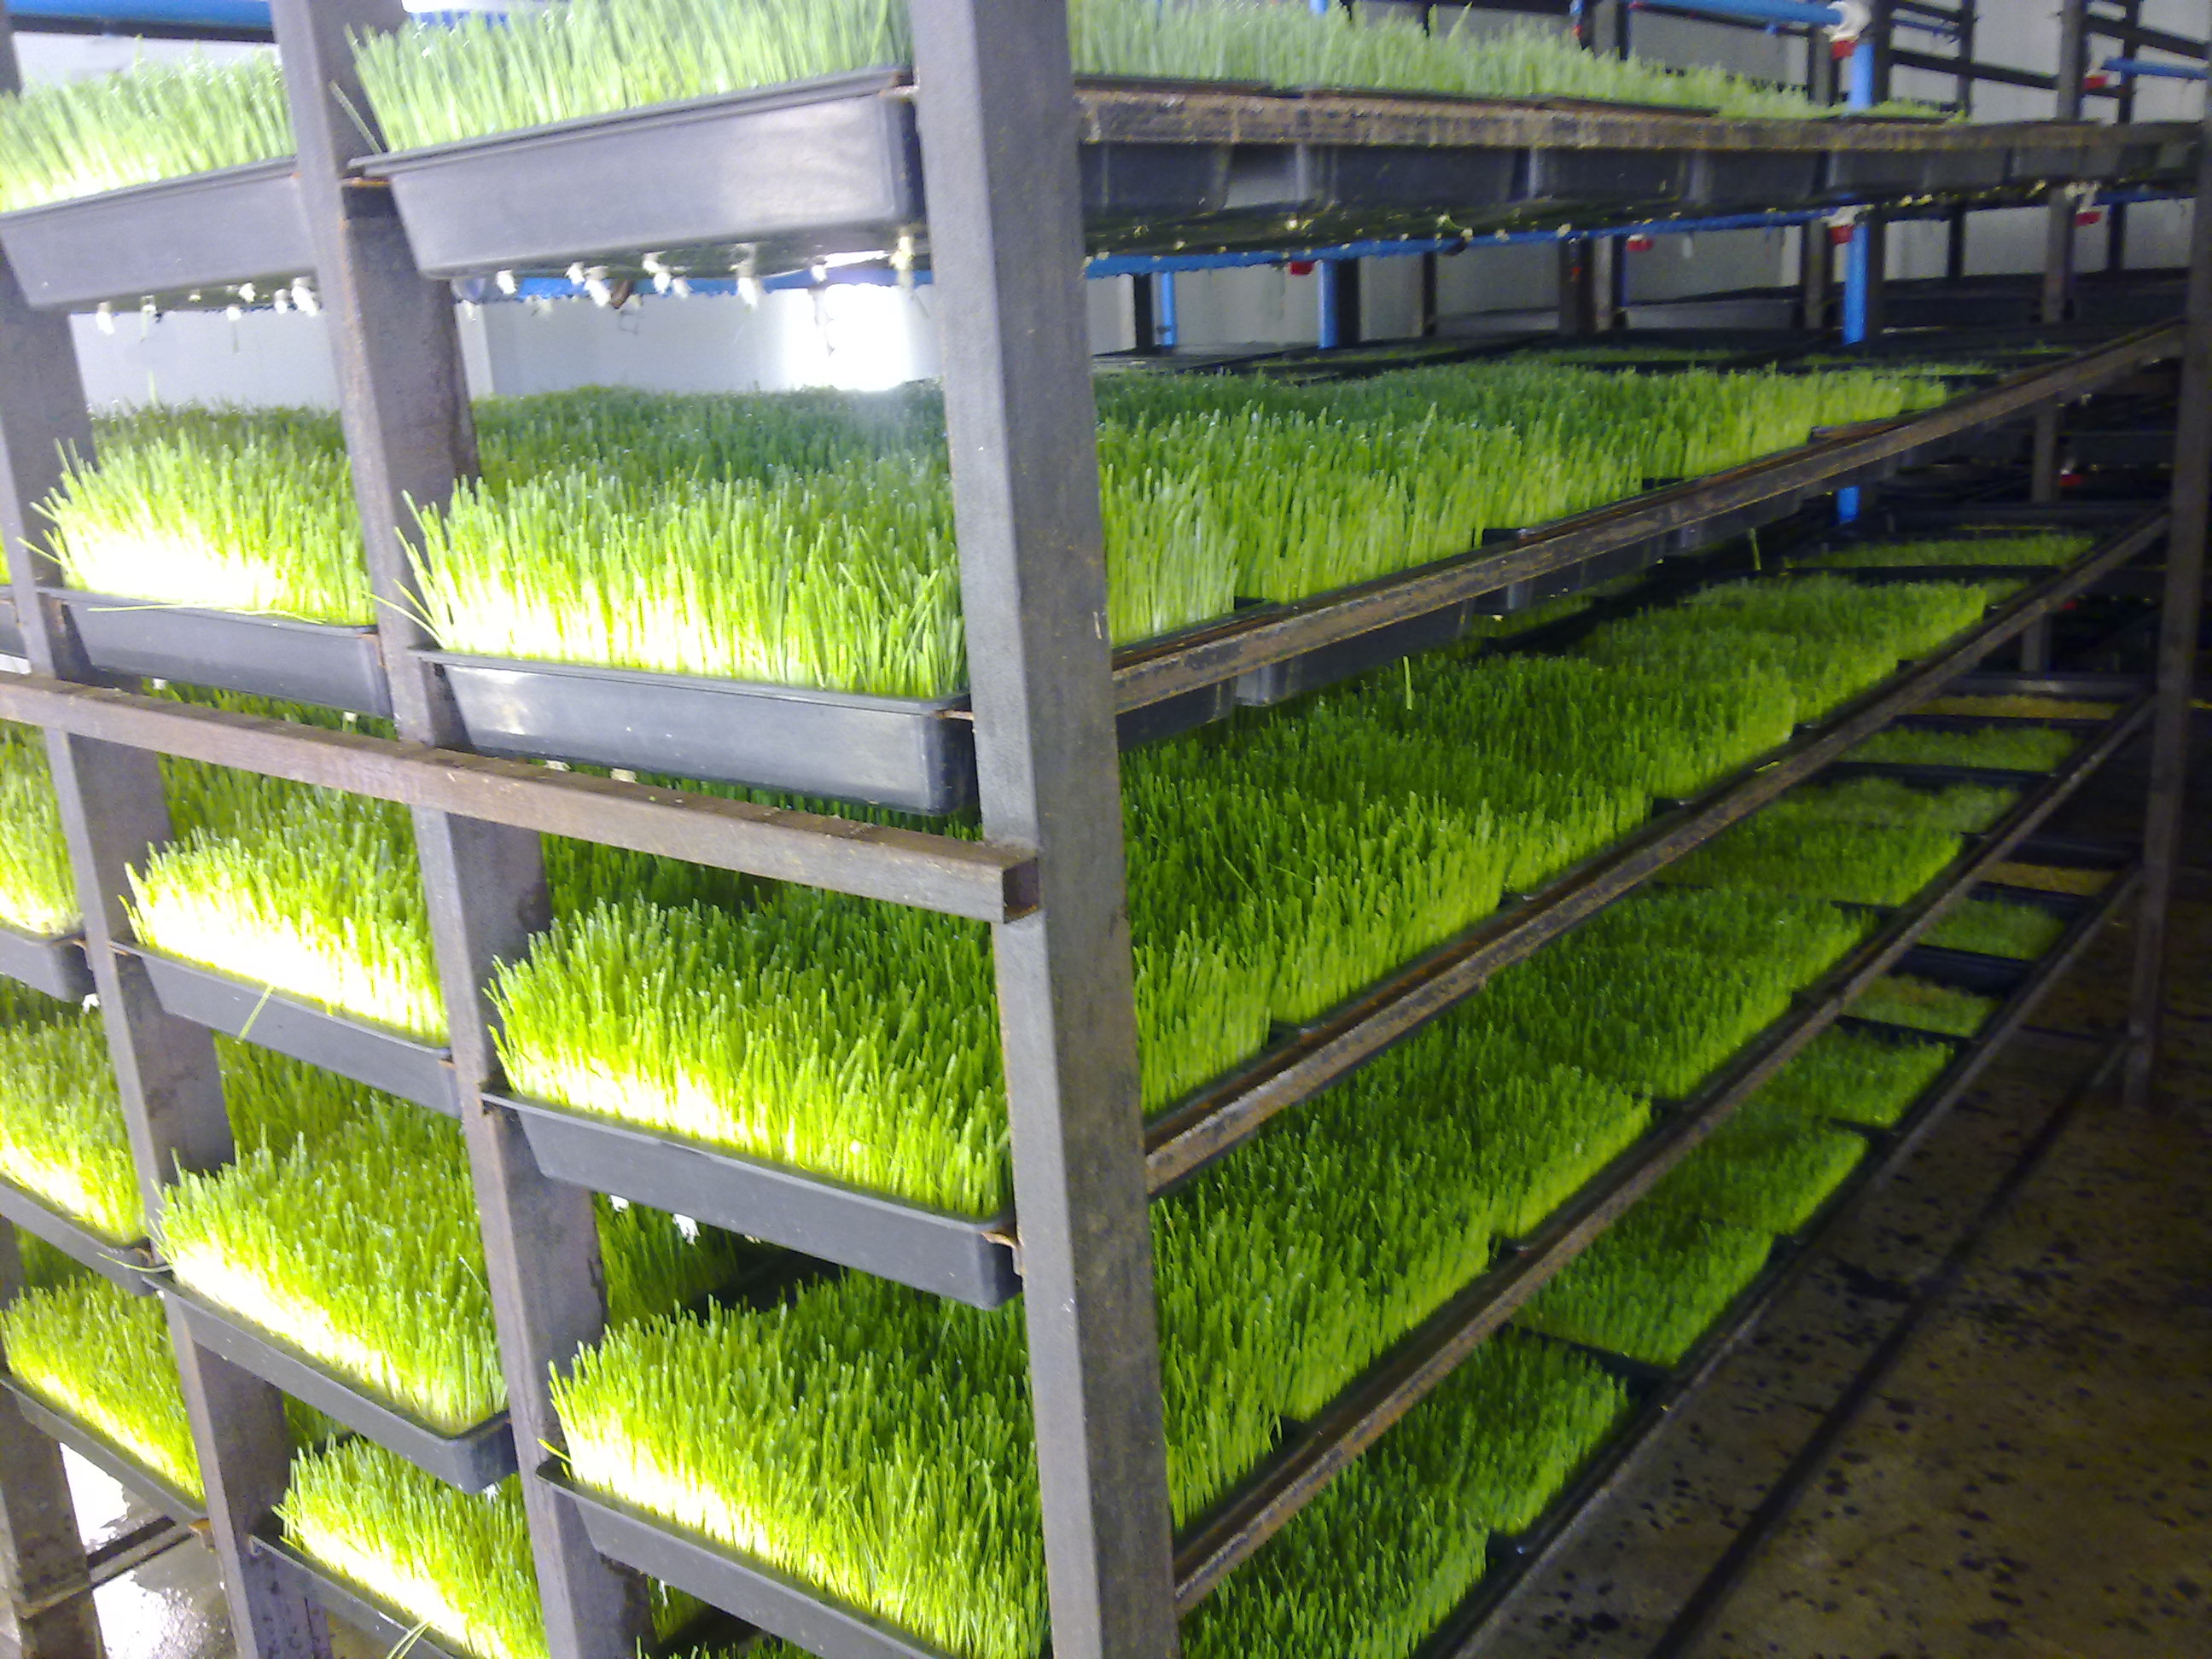 Qwikgro Undertaking R13 8 Million Qatar Aeroponic Fodder